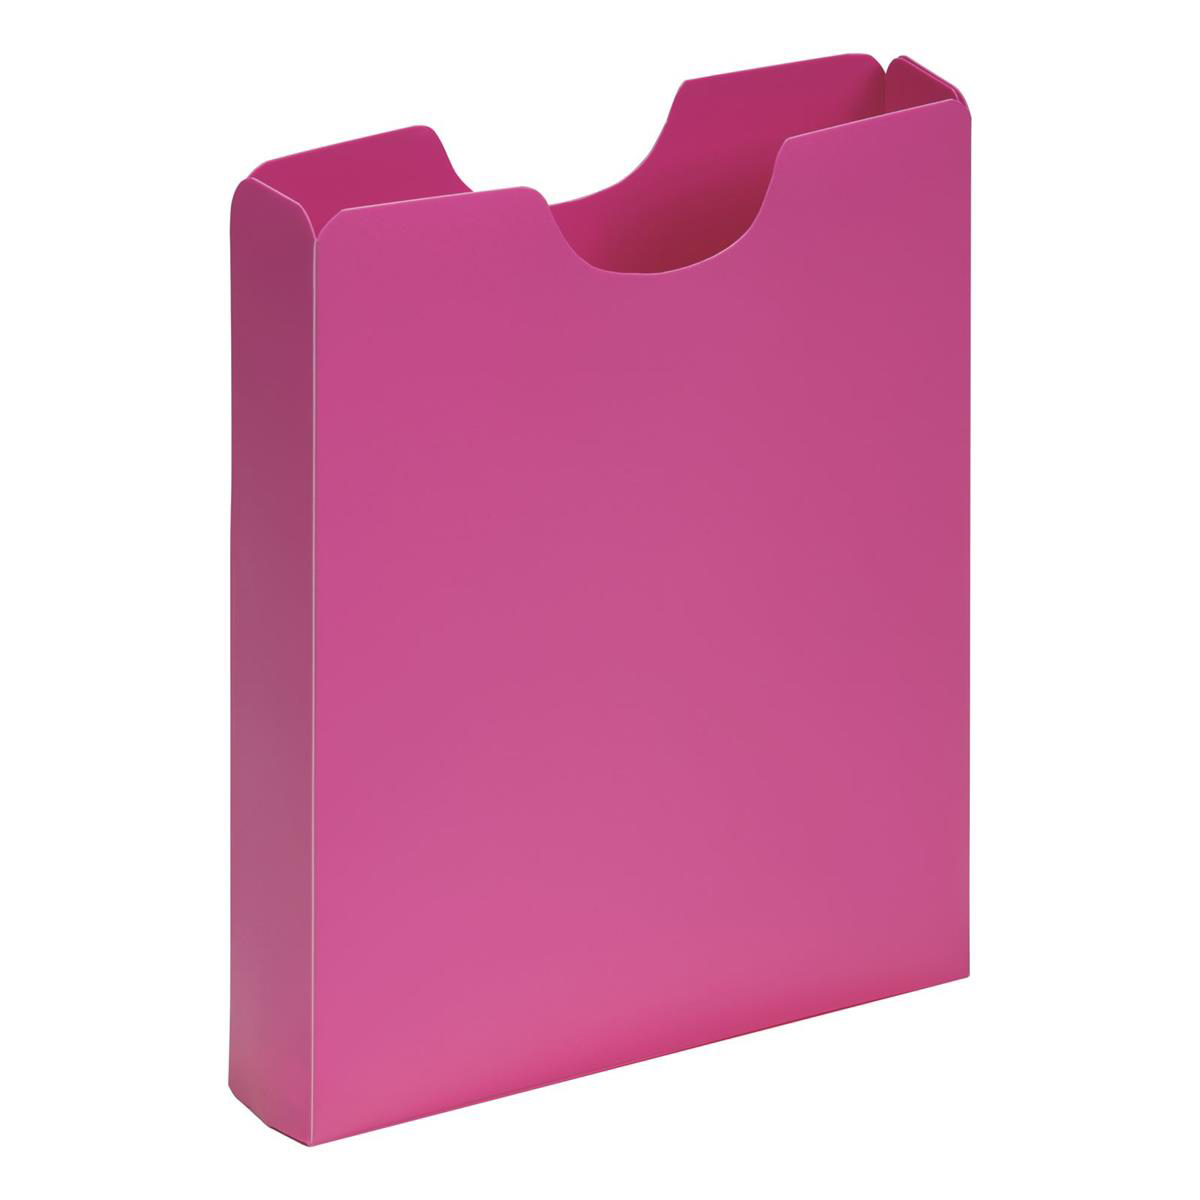 Pagna Carry Case Polypropylene A4 Dark Pink Ref 2100534 Pack 10